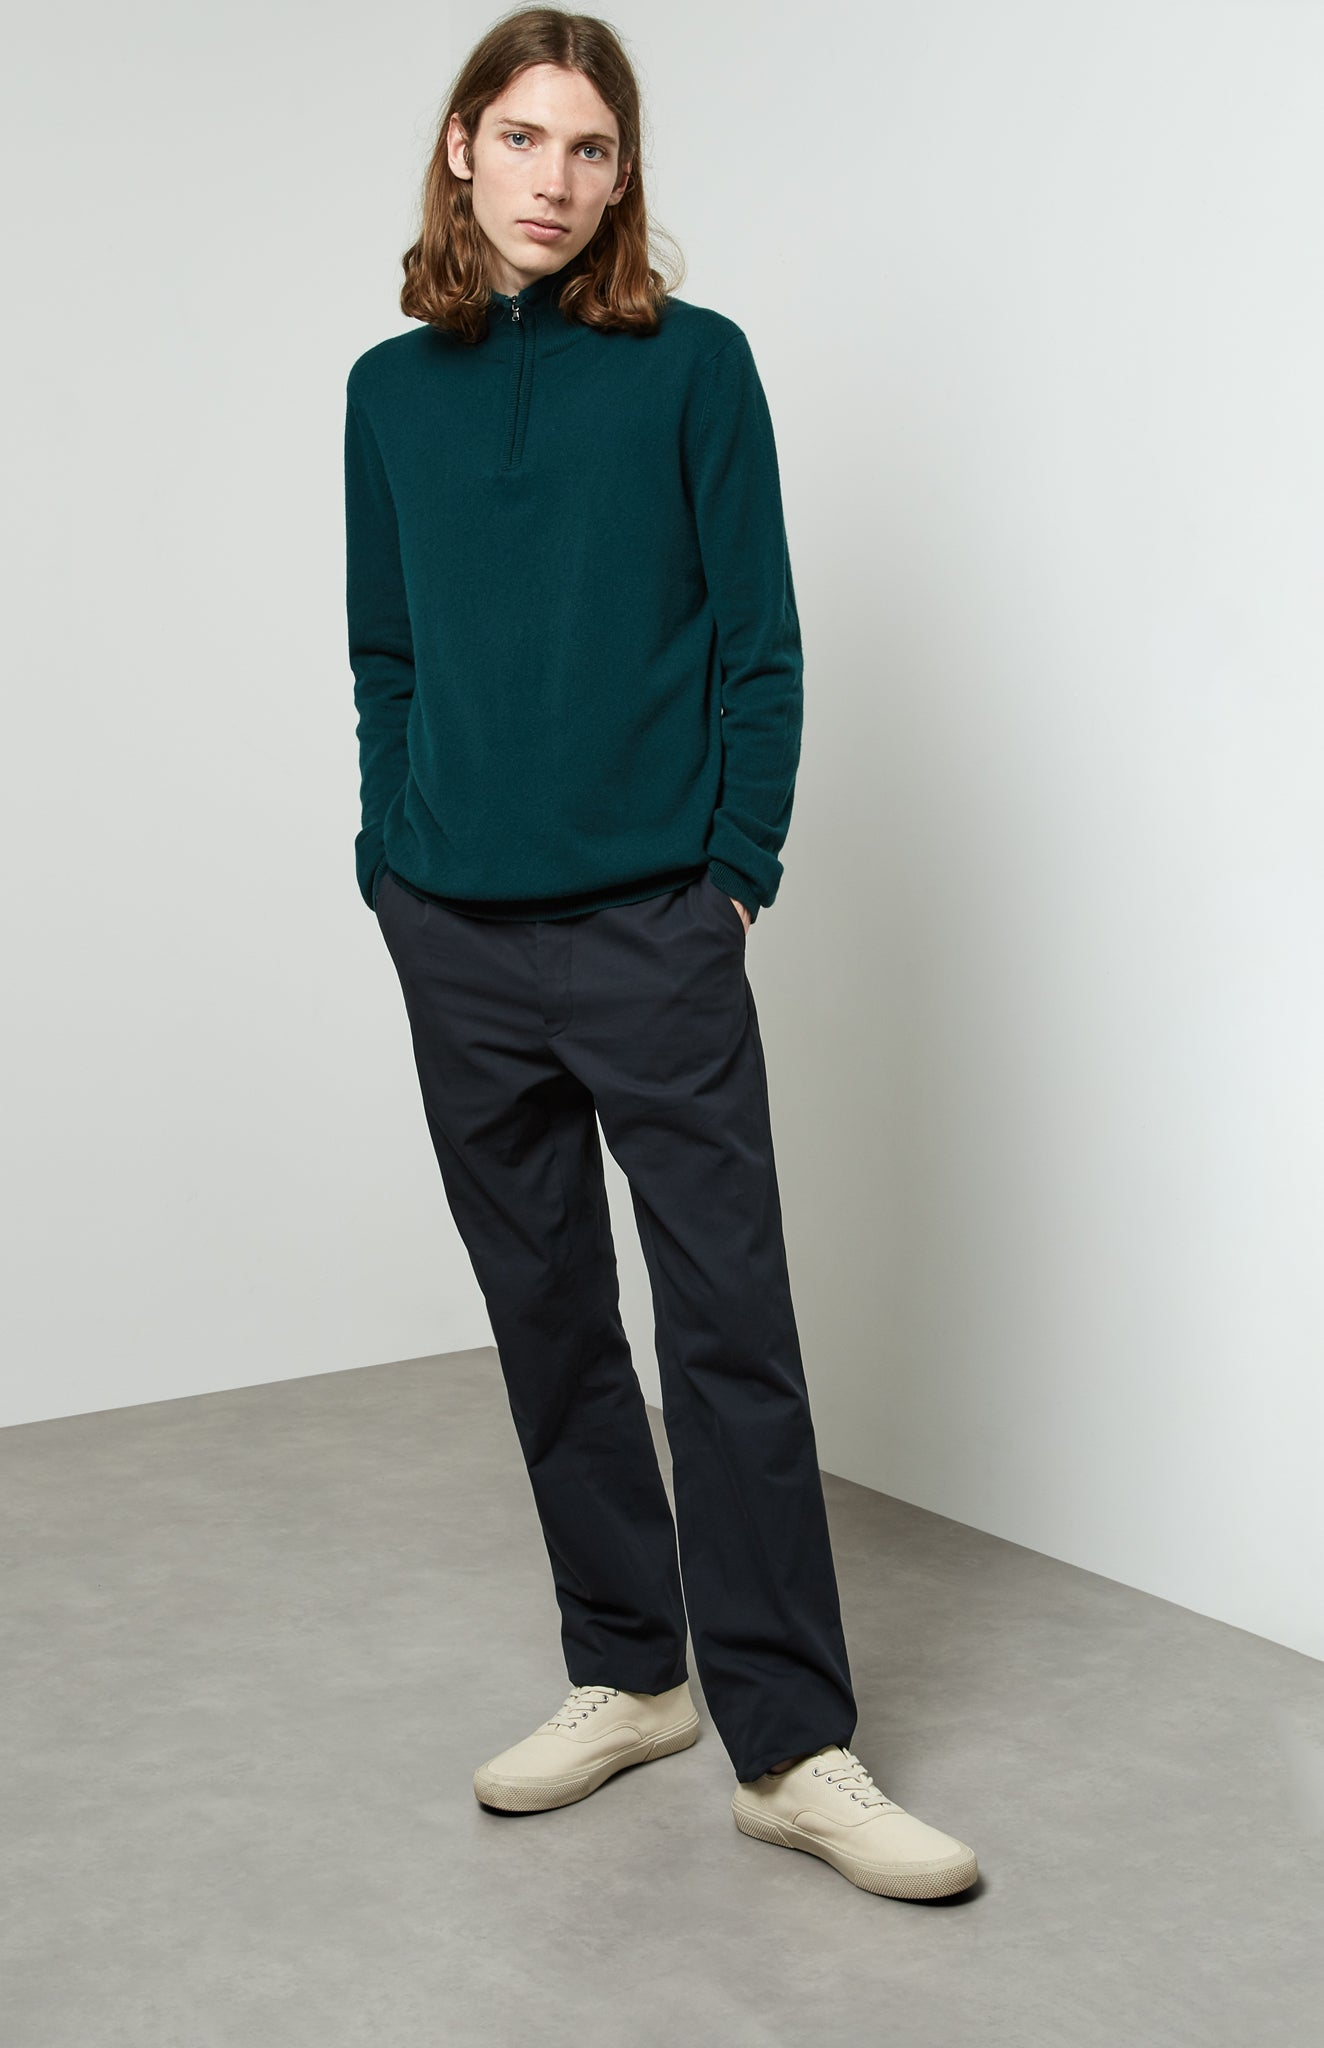 Zip Neck Cashmere Jumper In Evergreen